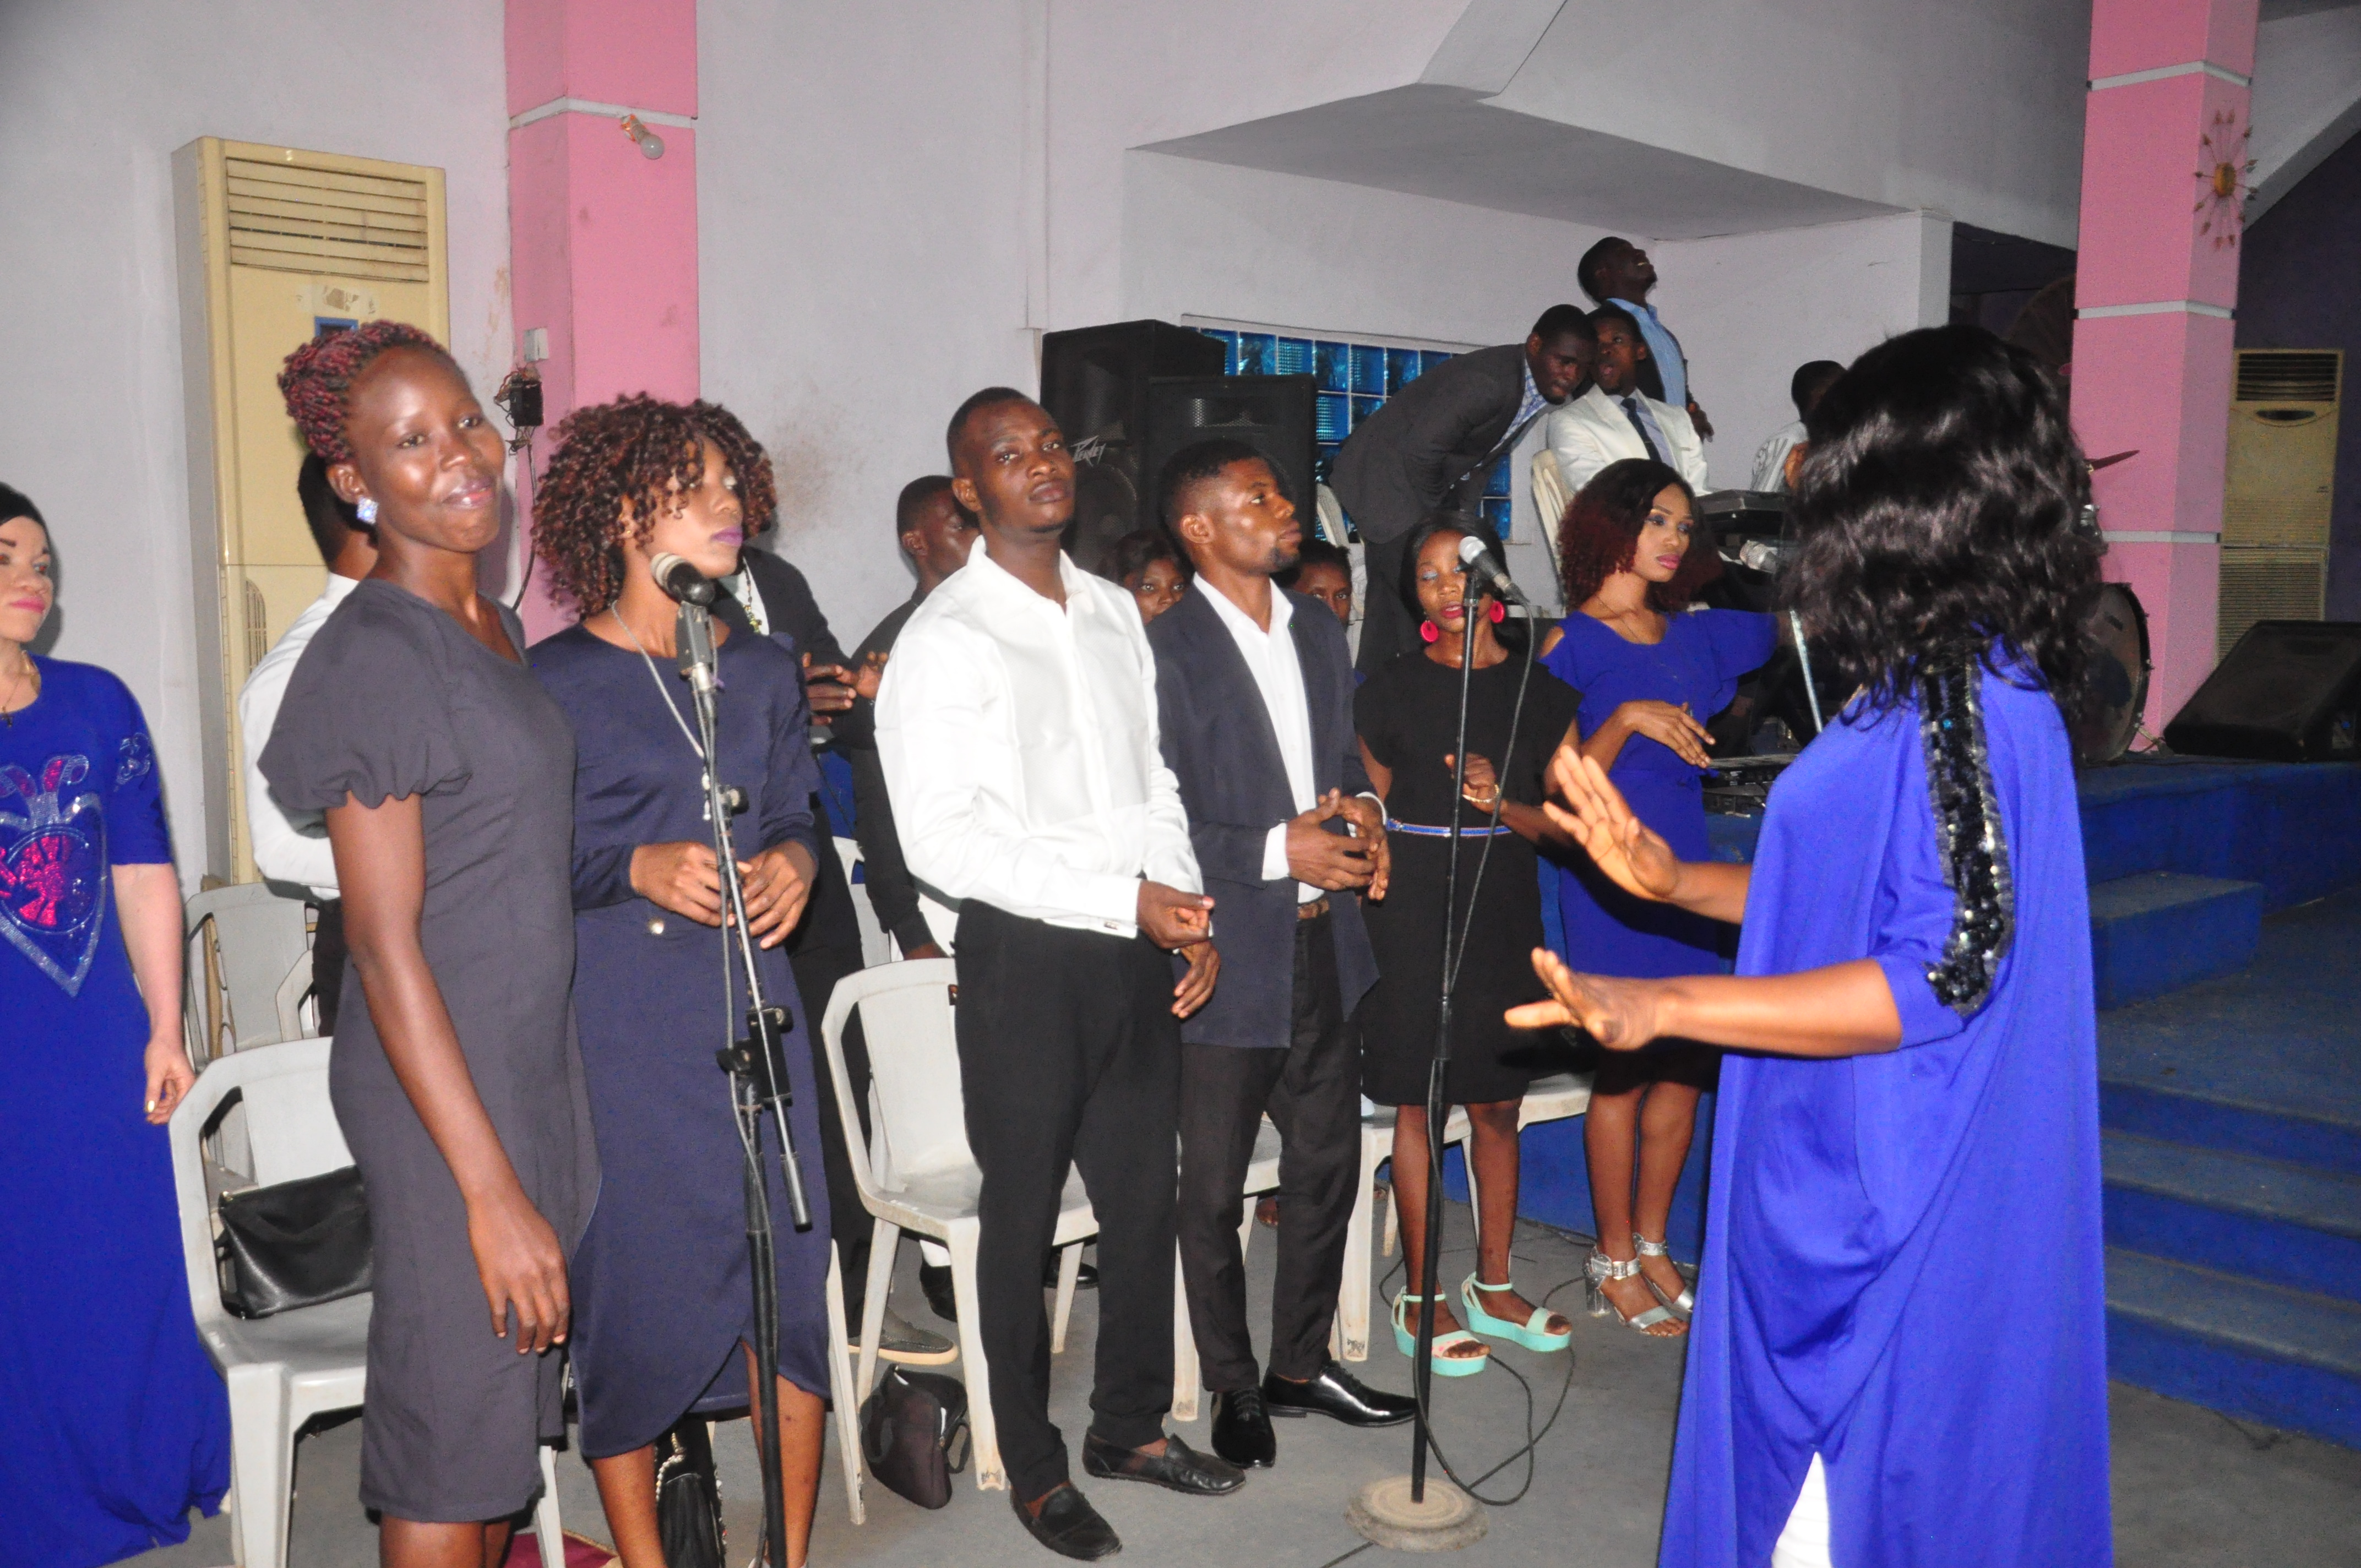 Special Ministrations at #totalexperience #celz1ro